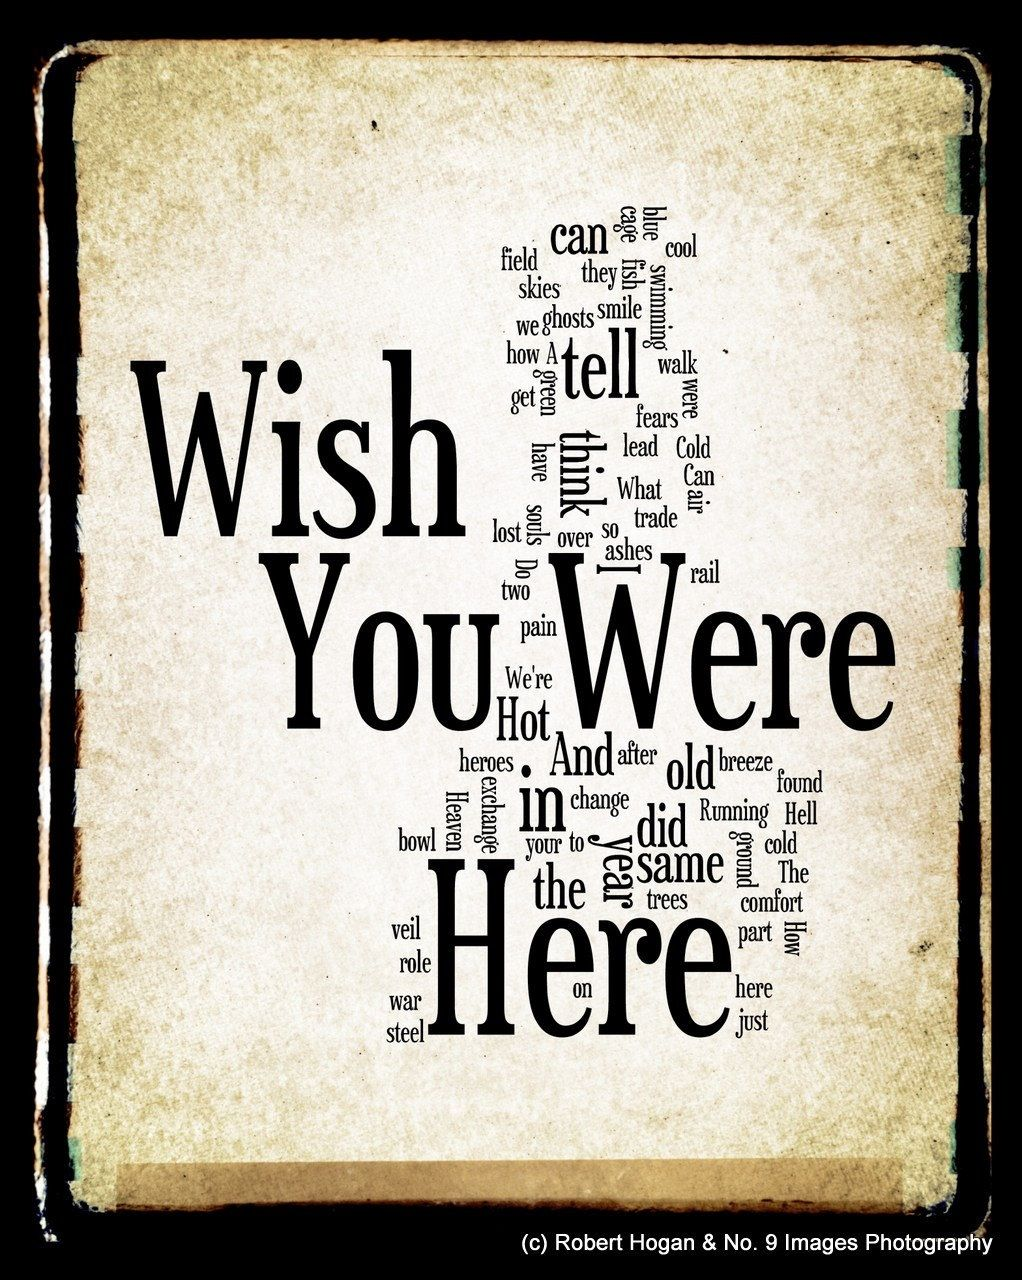 Wish You Were Here Quotes Pinkfloyd Wishyouwerehere  Music Quotes  Pinterest